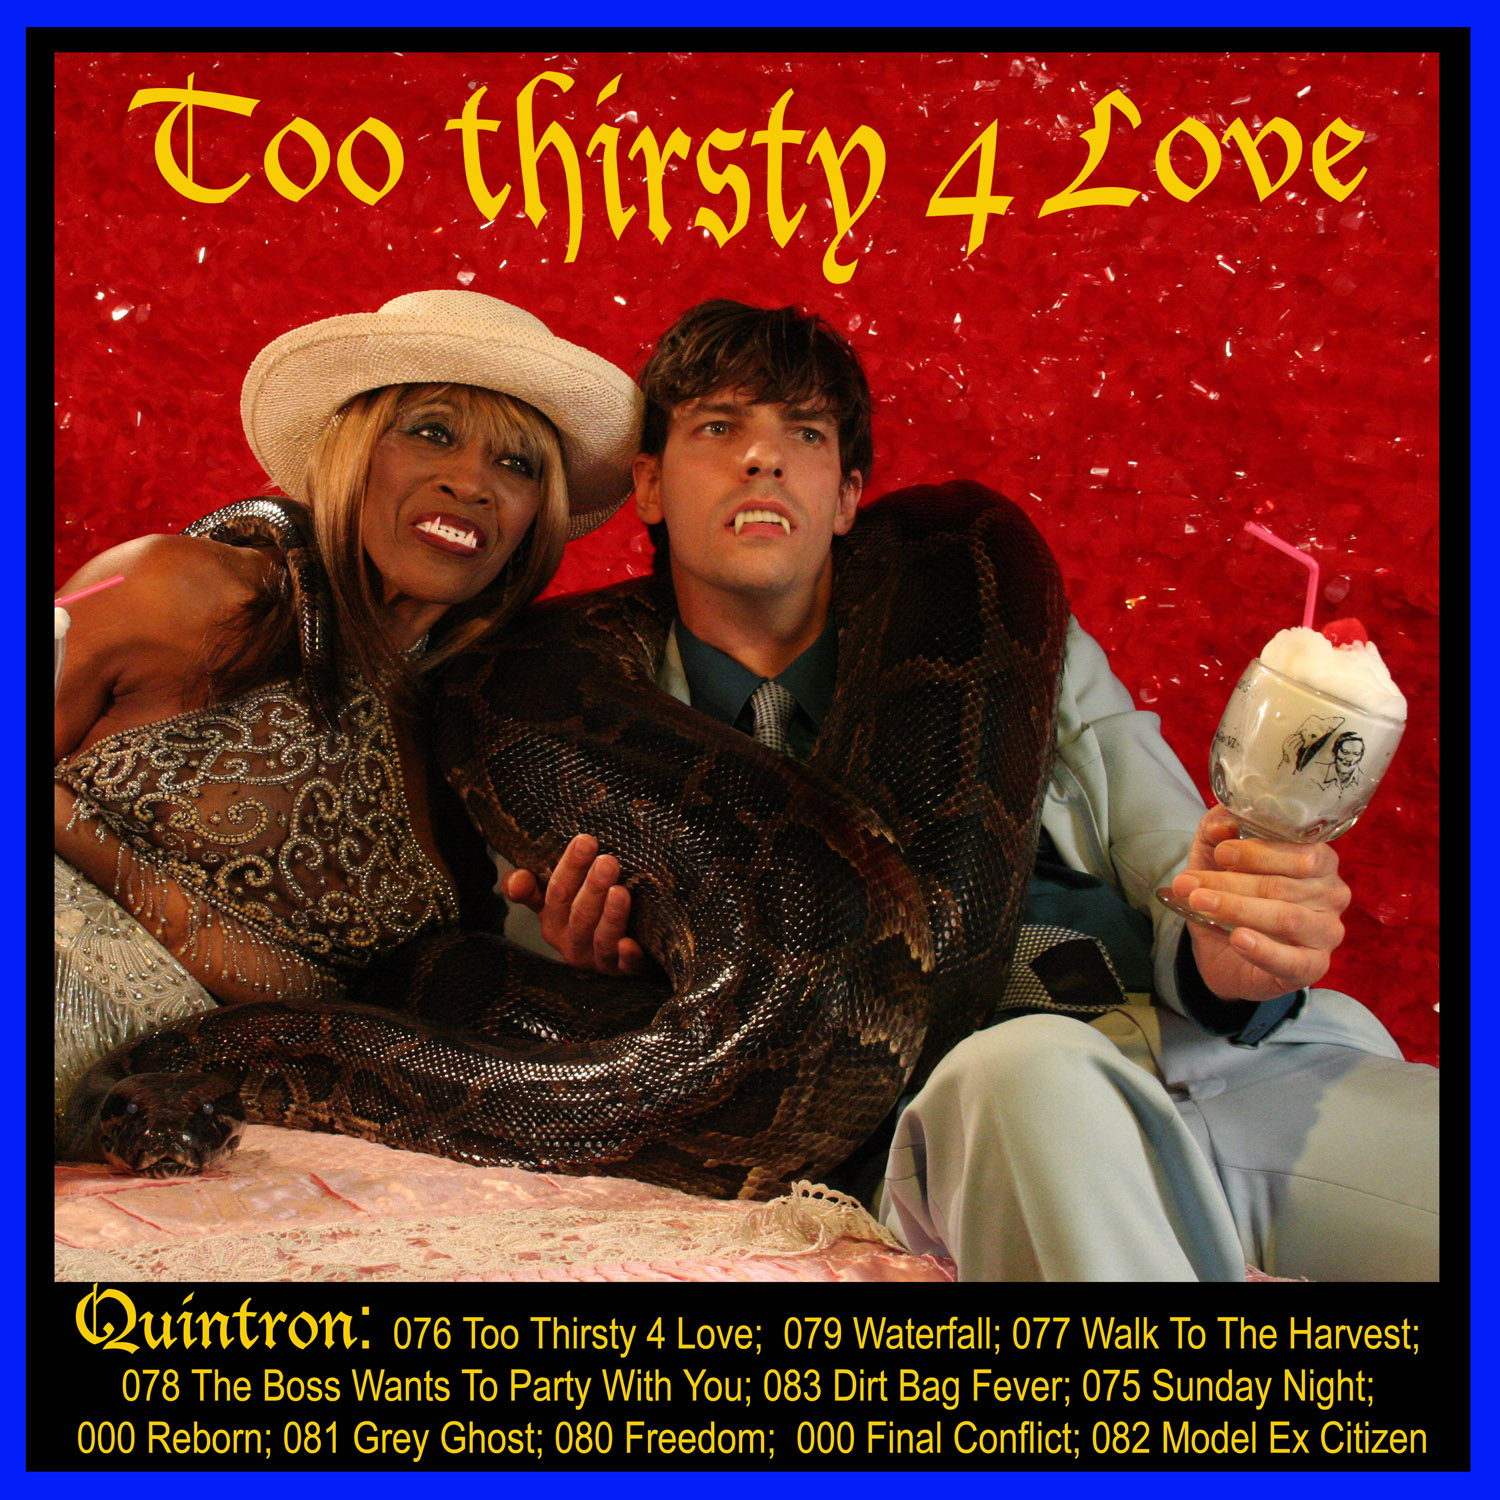 QUINTRON - TOO THIRSTY 4 LOVE